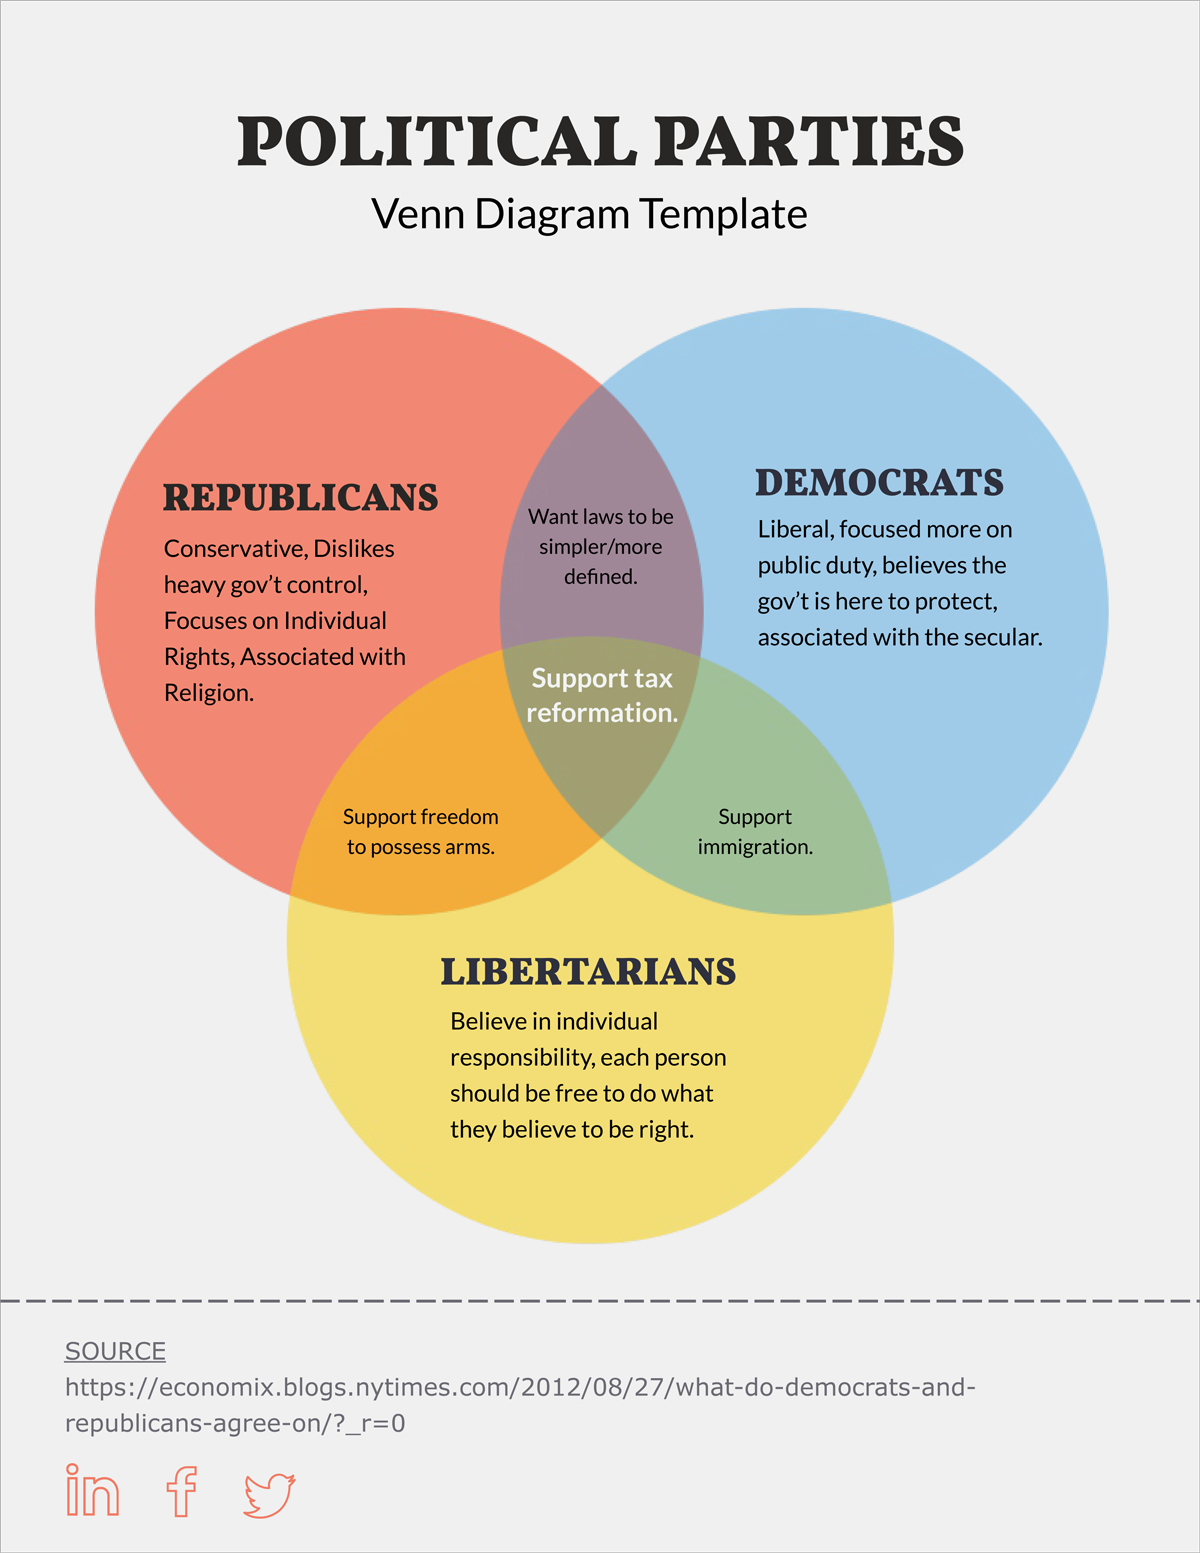 Free venn diagram template edit online and download visual political parties three circle venn diagram template pooptronica Images